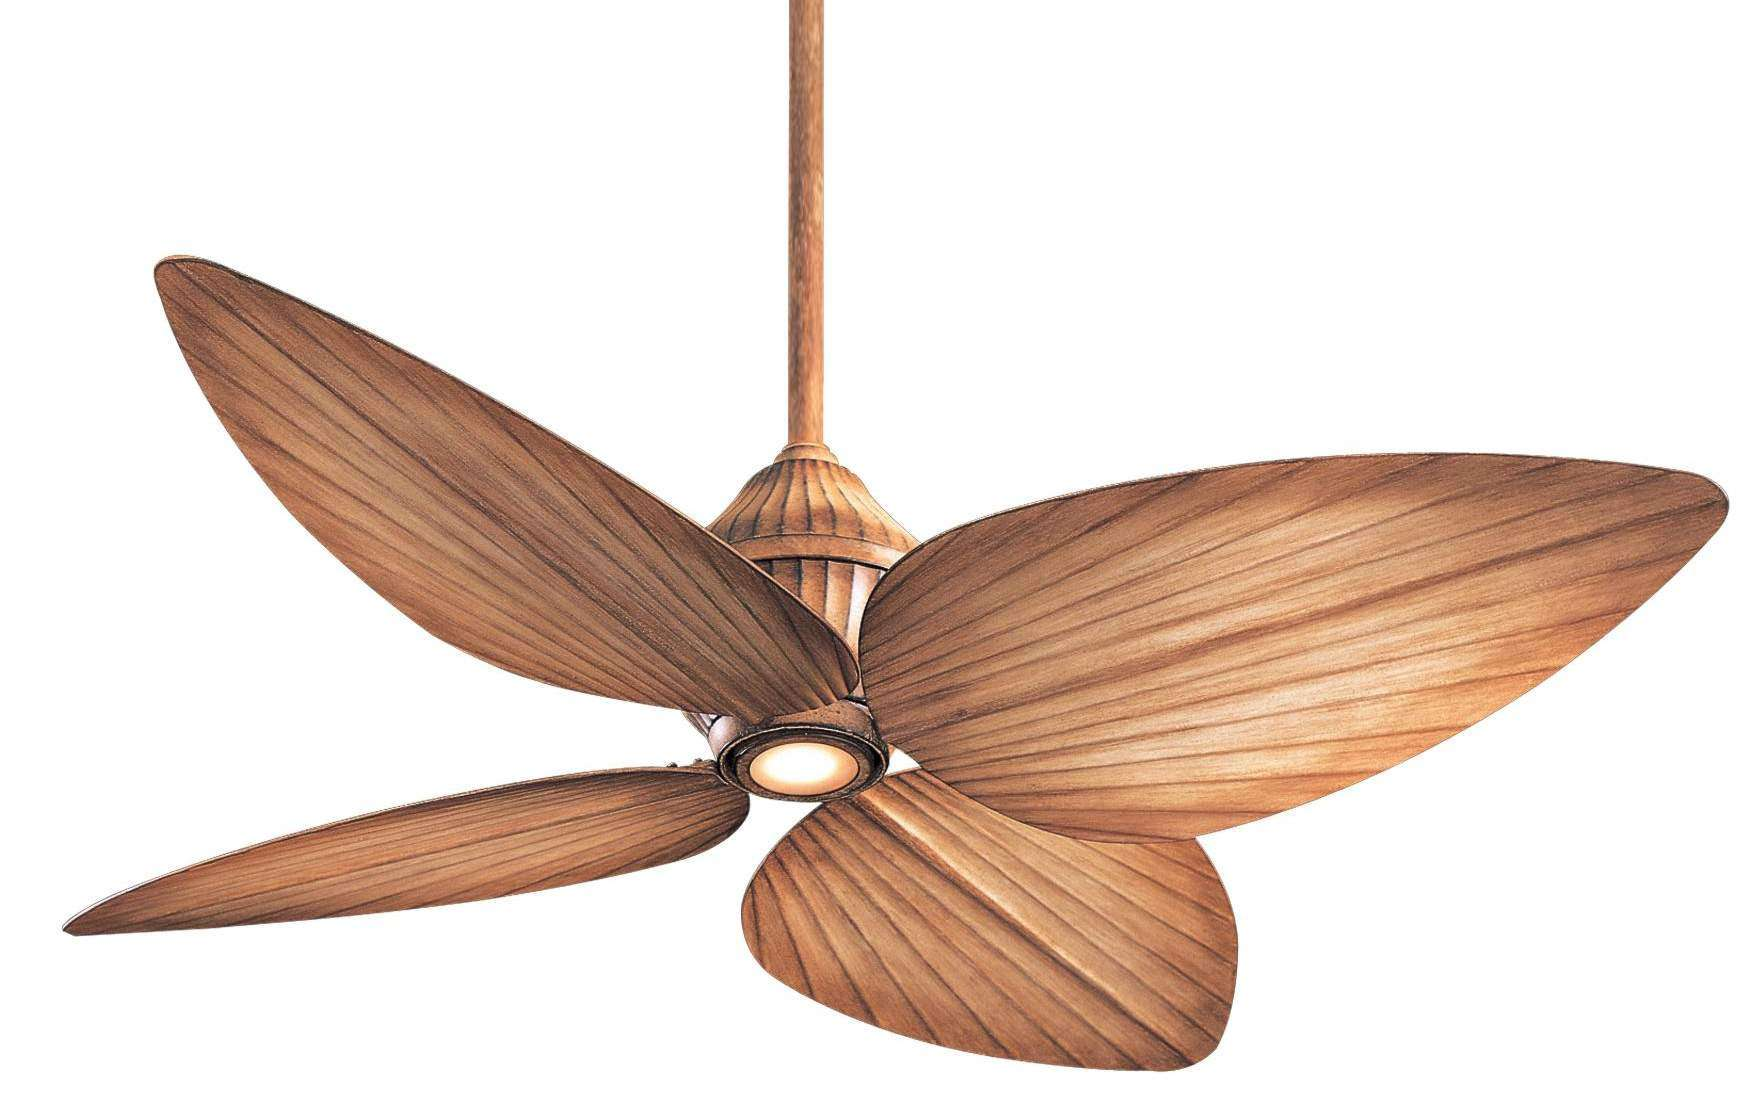 19137d62999b38e151aae9e03d53166f_2 minka aire gauguin ceiling fan model f581 bg in bahama beige Ceiling Fans with Lights Wiring-Diagram at gsmx.co